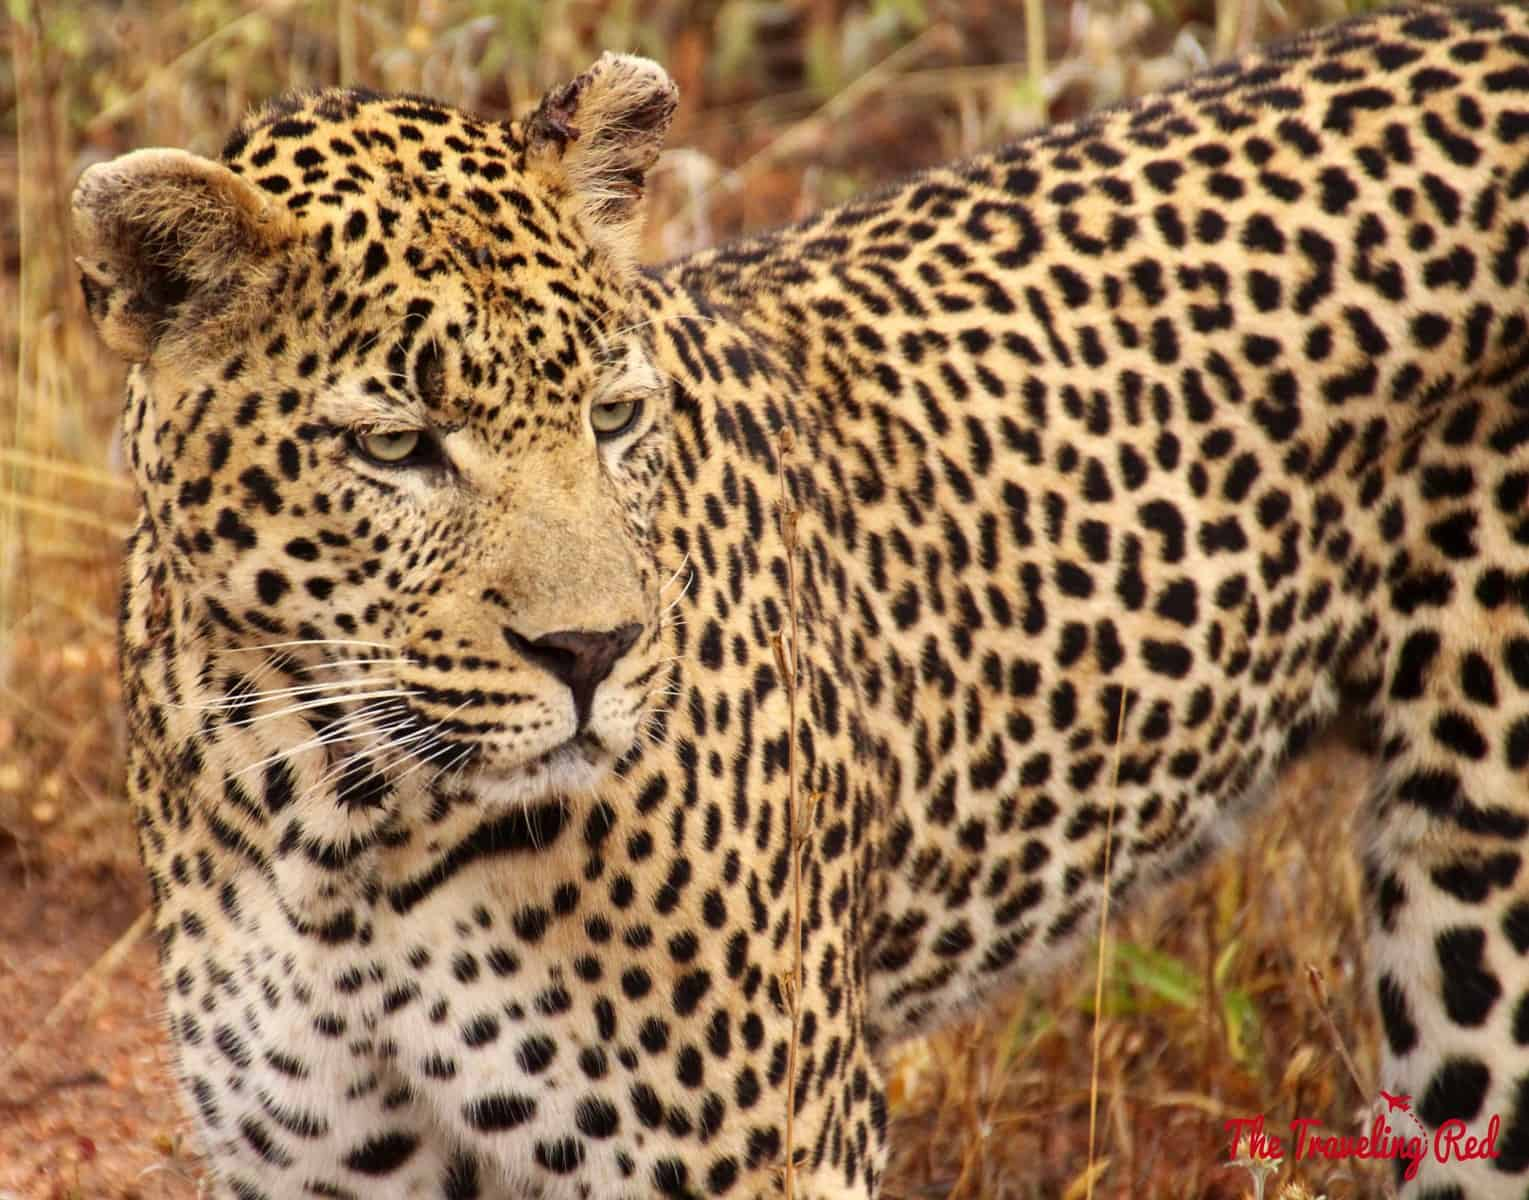 A gorgeous leopard in South Africa